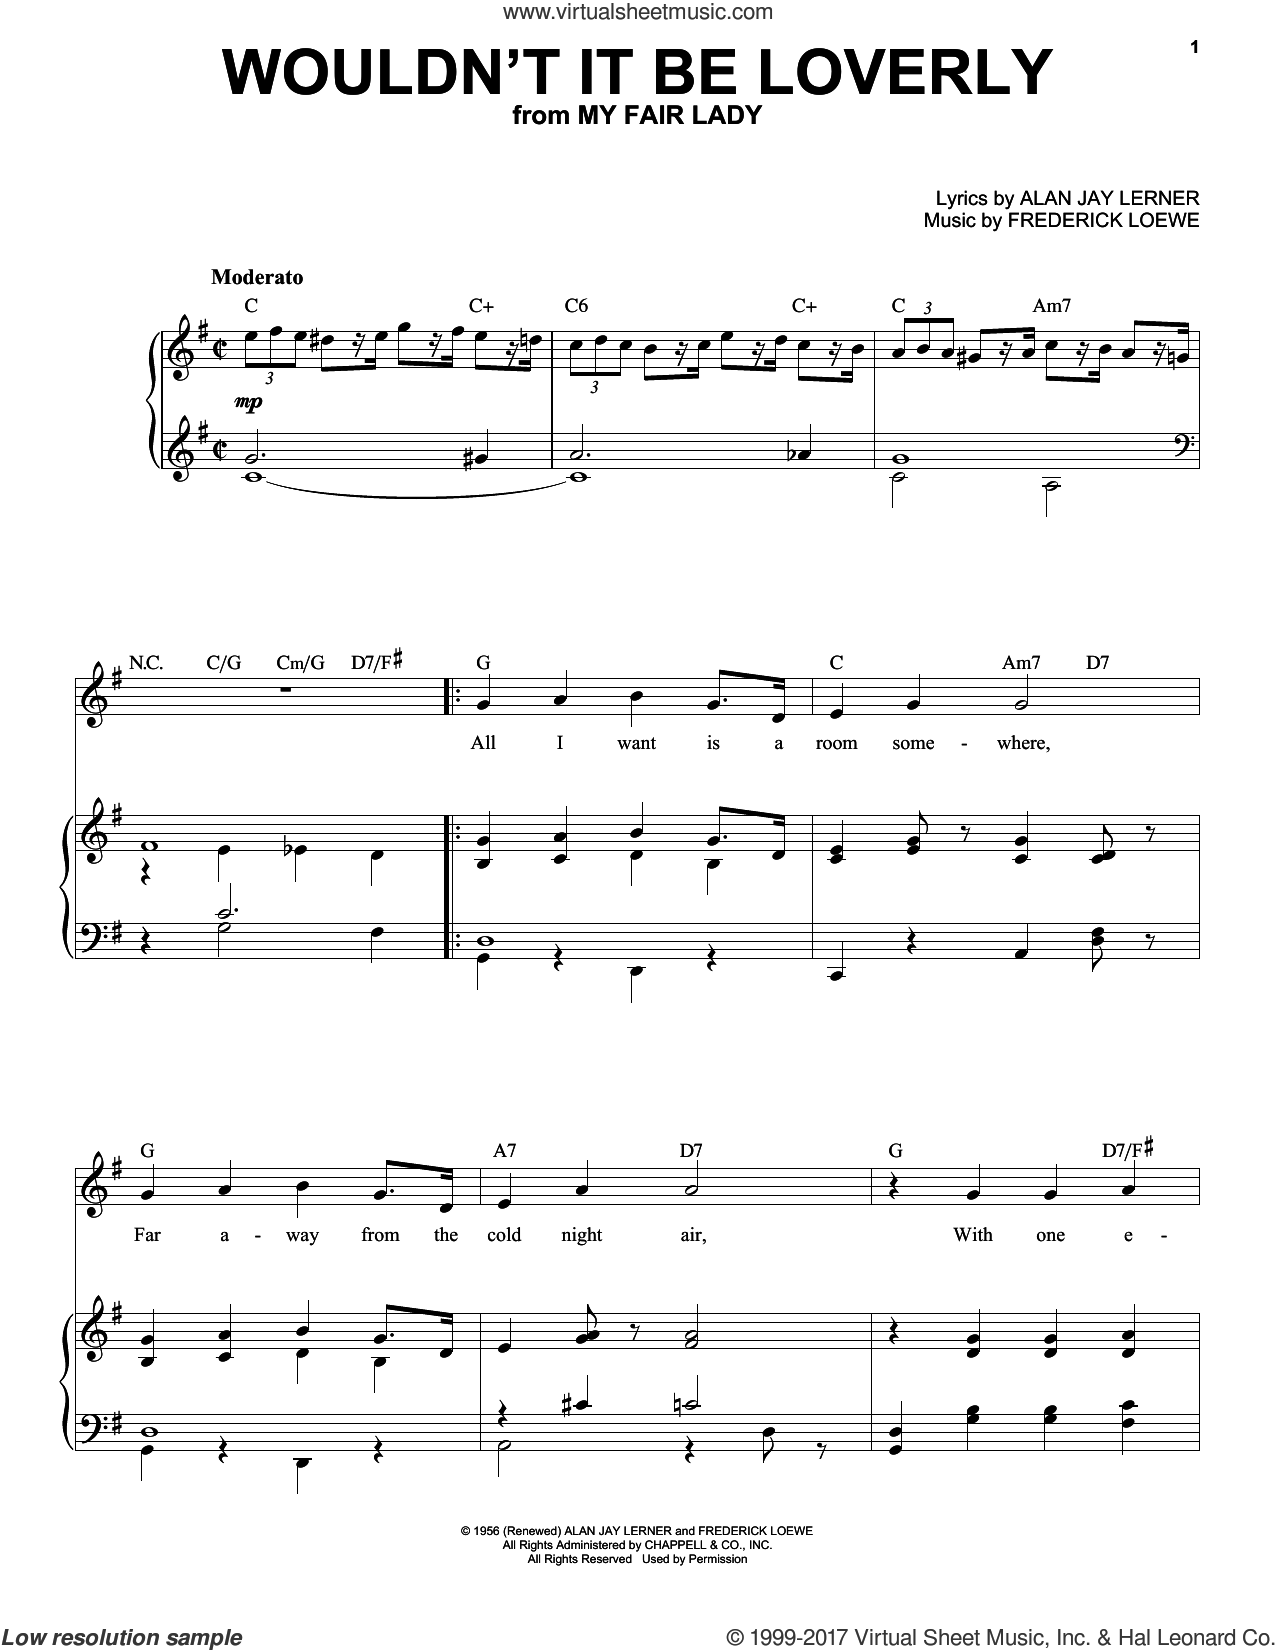 Wouldn't It Be Loverly sheet music for voice and piano (High ) by Frederick Loewe and Alan Jay Lerner, intermediate. Score Image Preview.